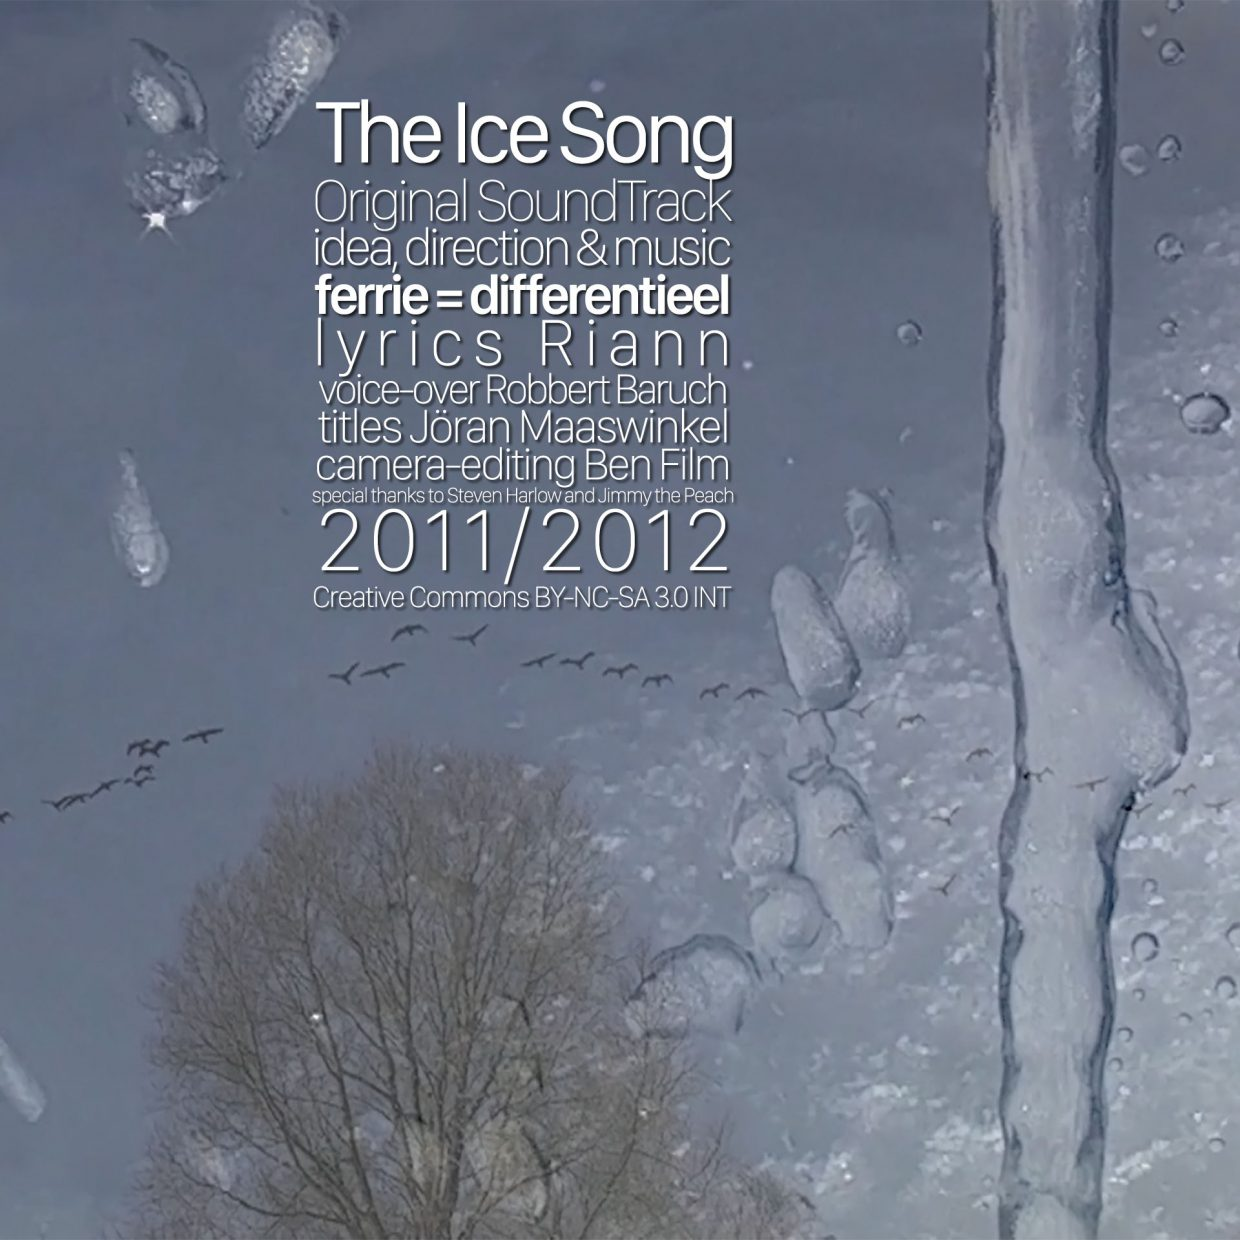 The Ice Song cover OST